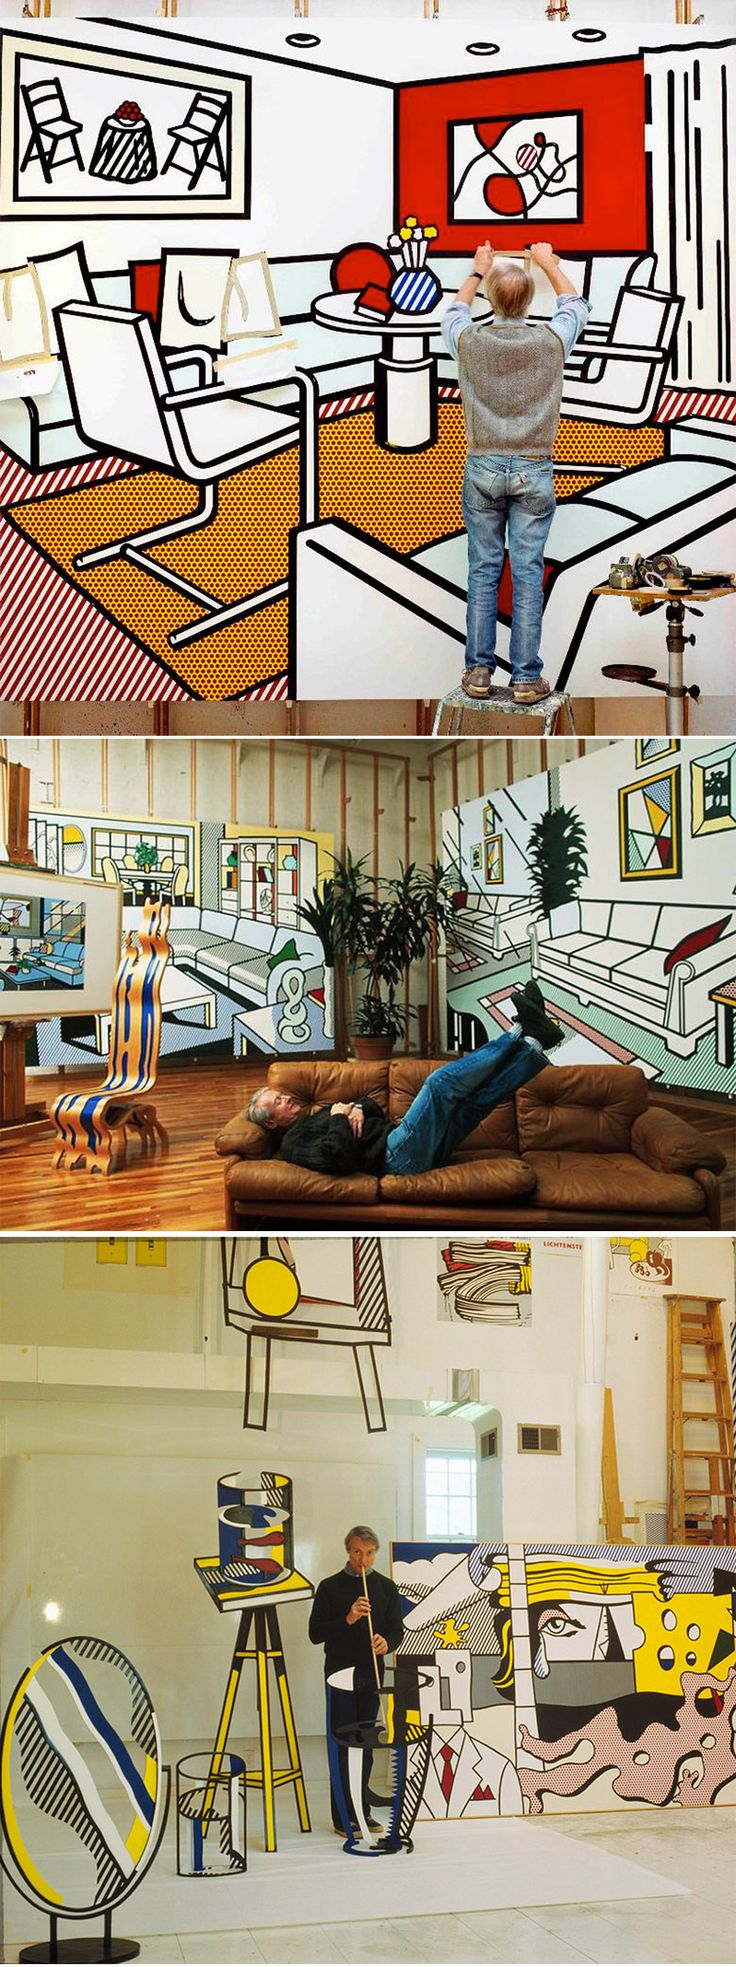 Best Roy Lichtenstein Ideas On Pinterest Roy Lichtenstein - Cartoon mural man obsessing facebook likes says lot society